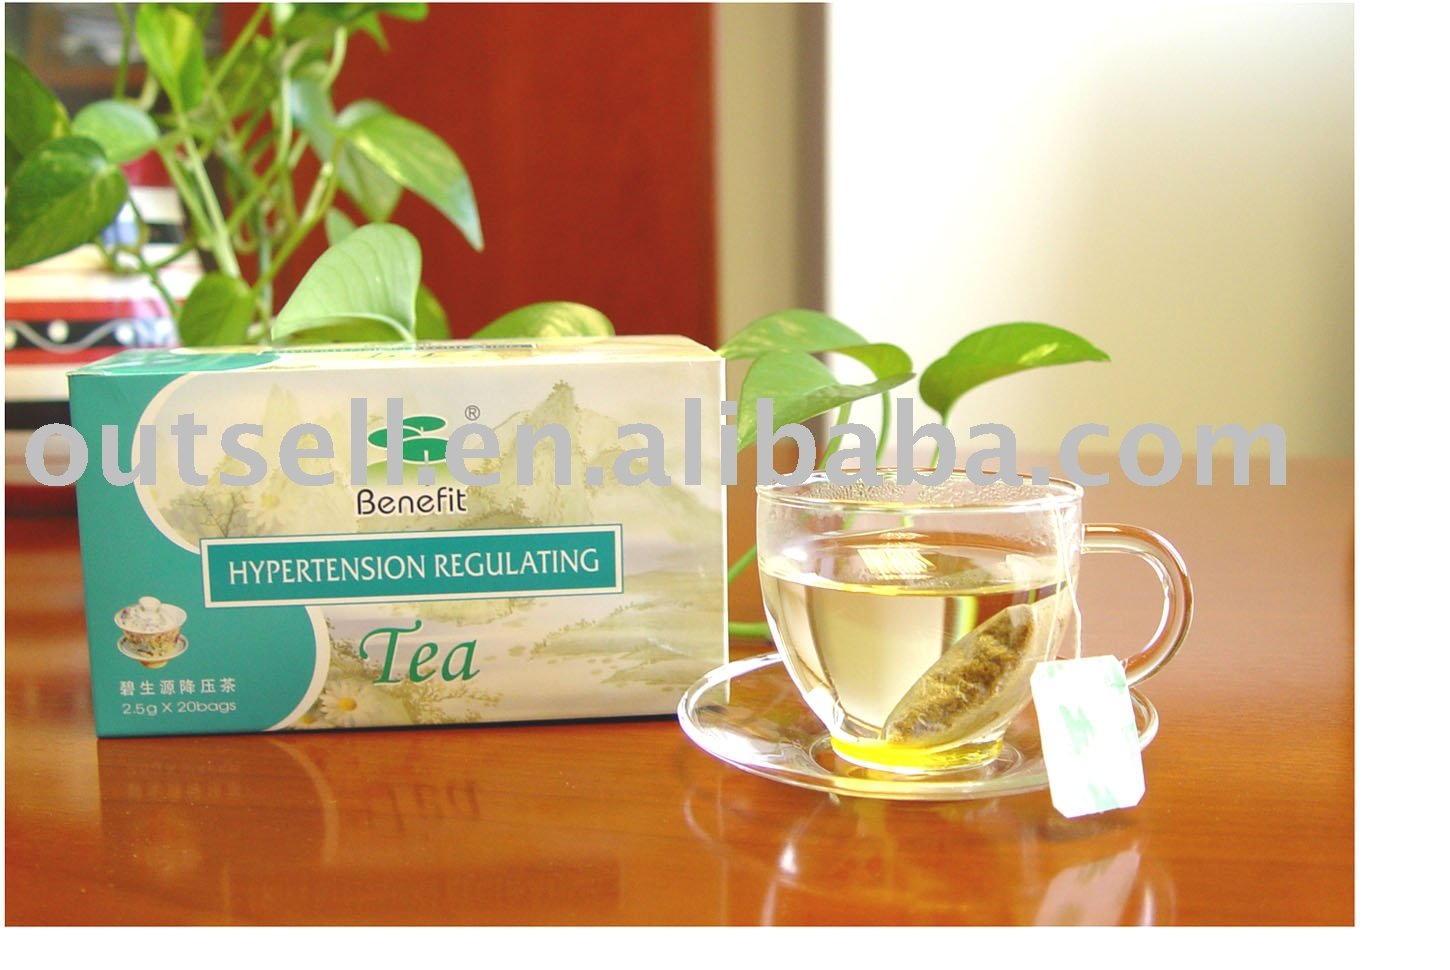 Benefit Hypertension Regulating Tea